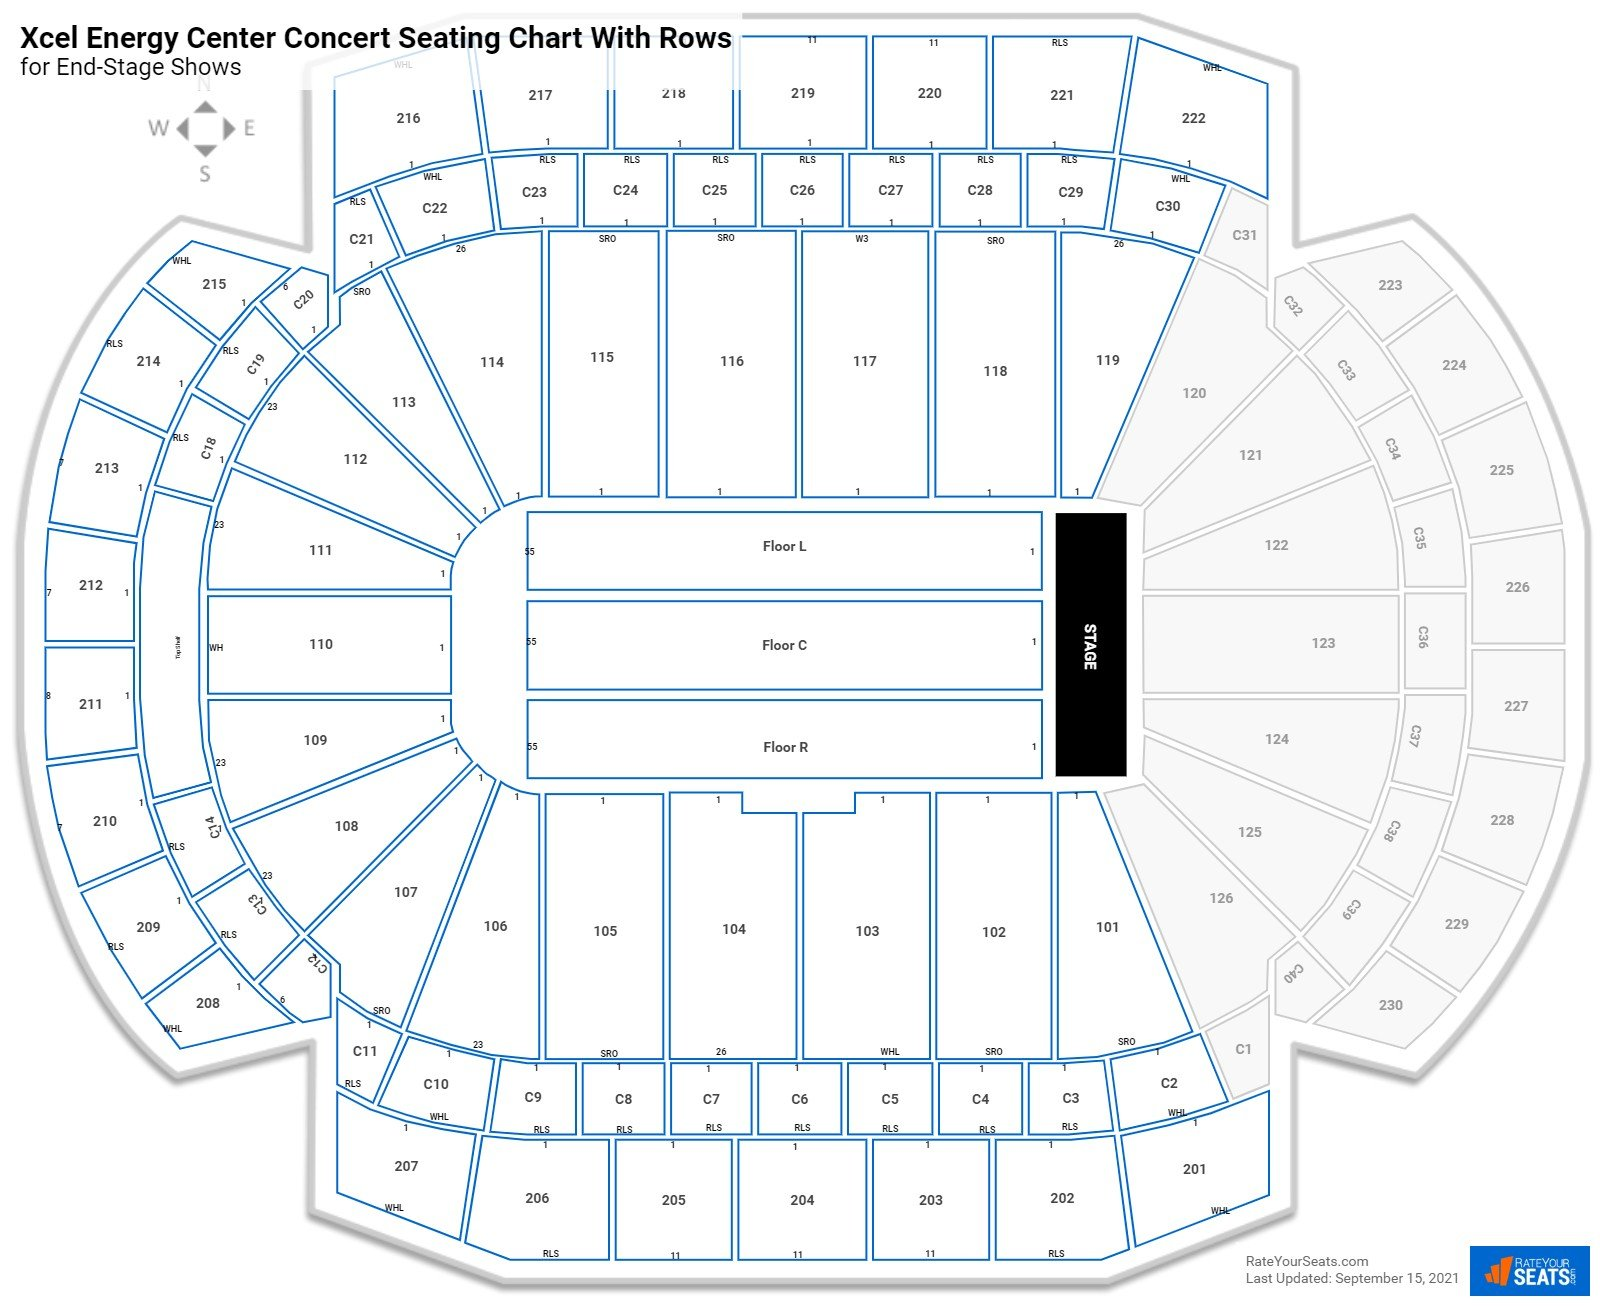 Xcel Energy Center seating chart with rows concert